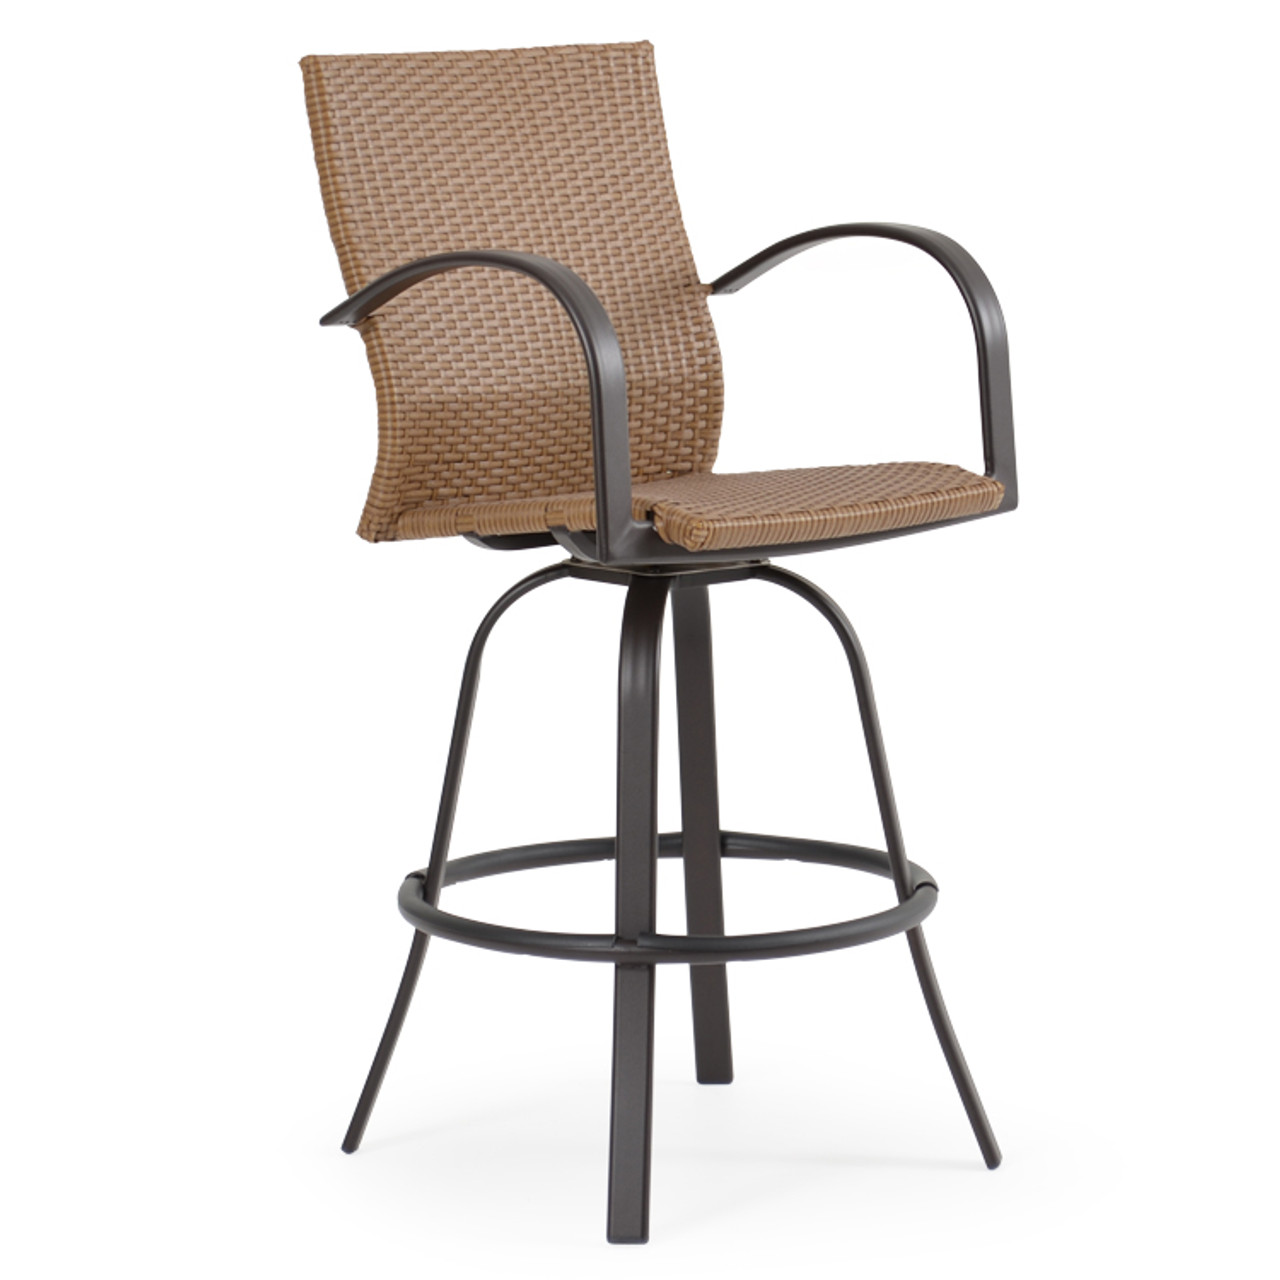 Image of: Empire Outdoor Wicker Bar Stool Leaders Casual Furniture